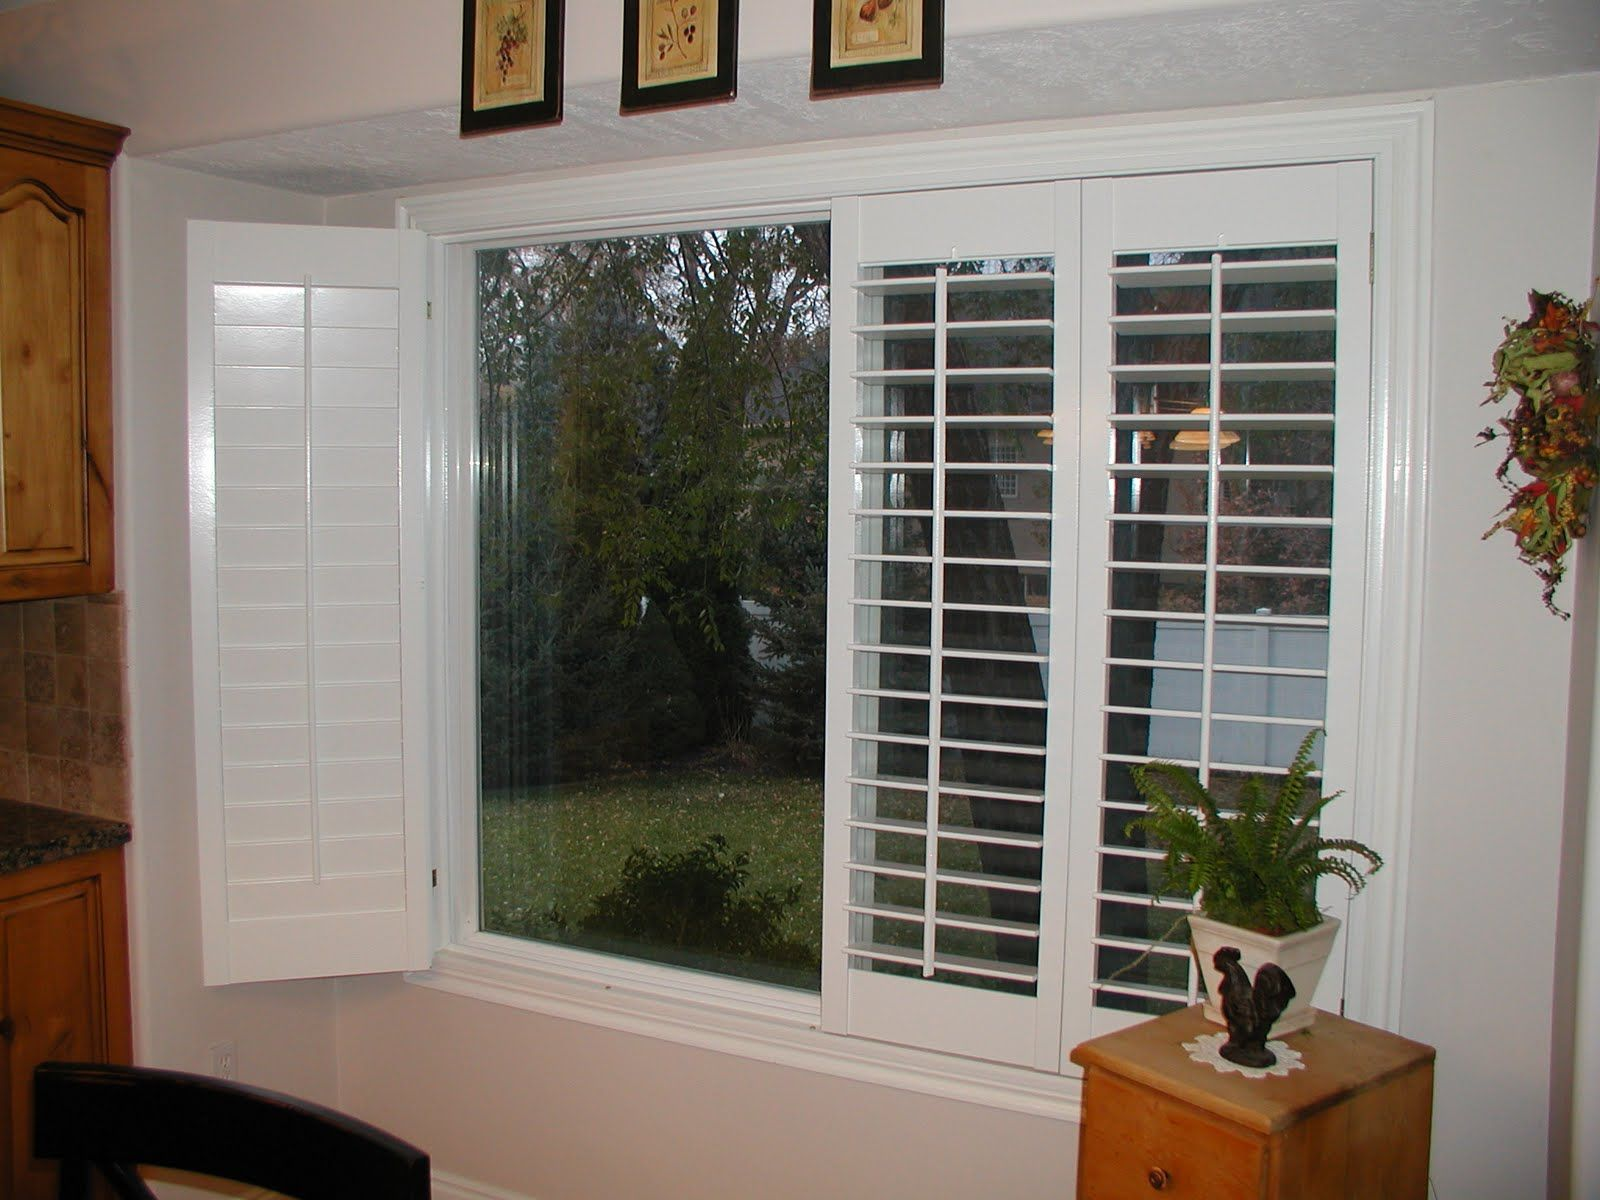 upvc windows and doors for your home this Christmas should